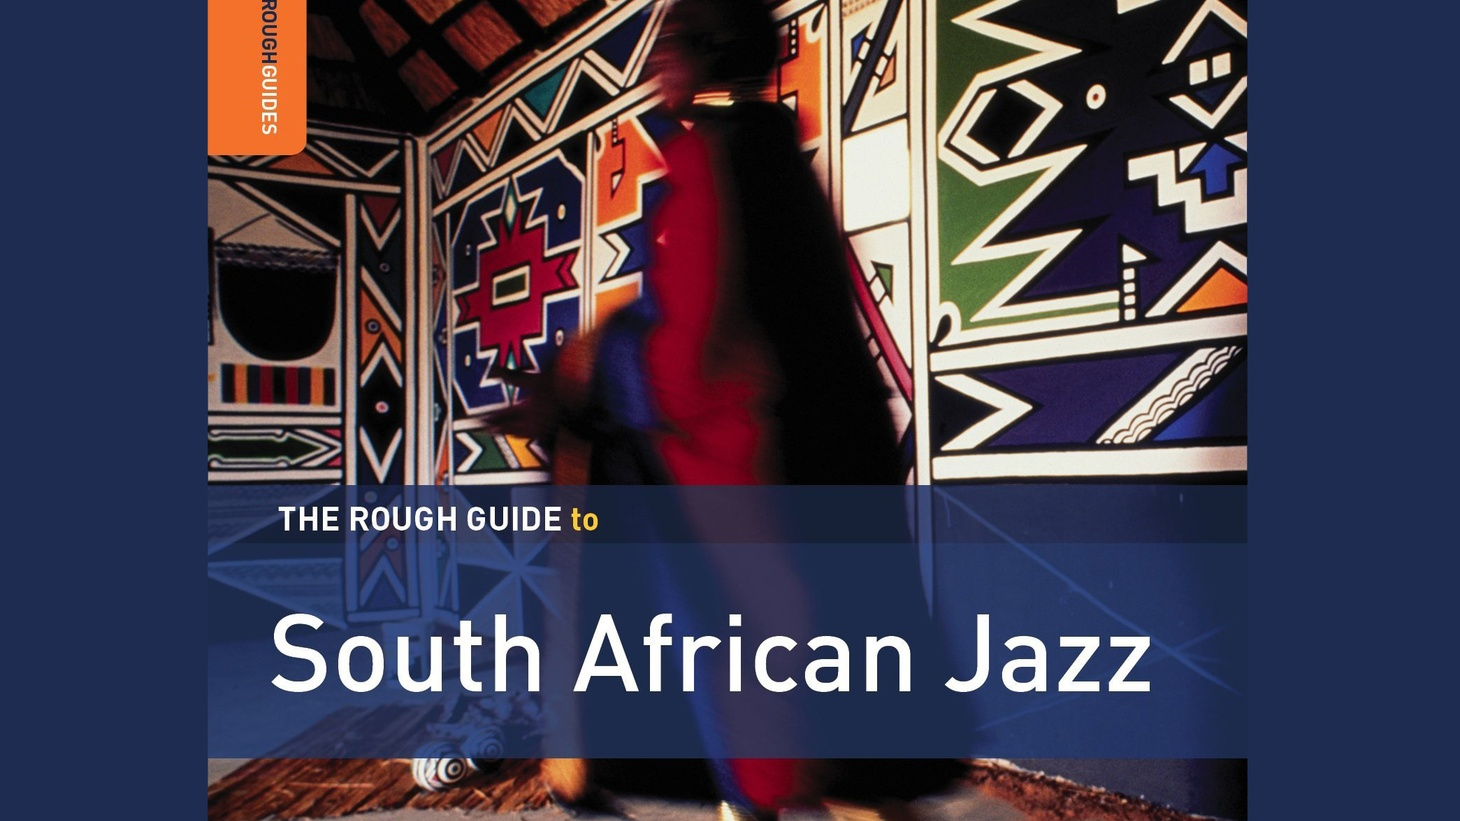 This week Rhythm Planet samples new releases from Brazil, Colombia, Ethiopia, South Africa, and some choice new jazz.